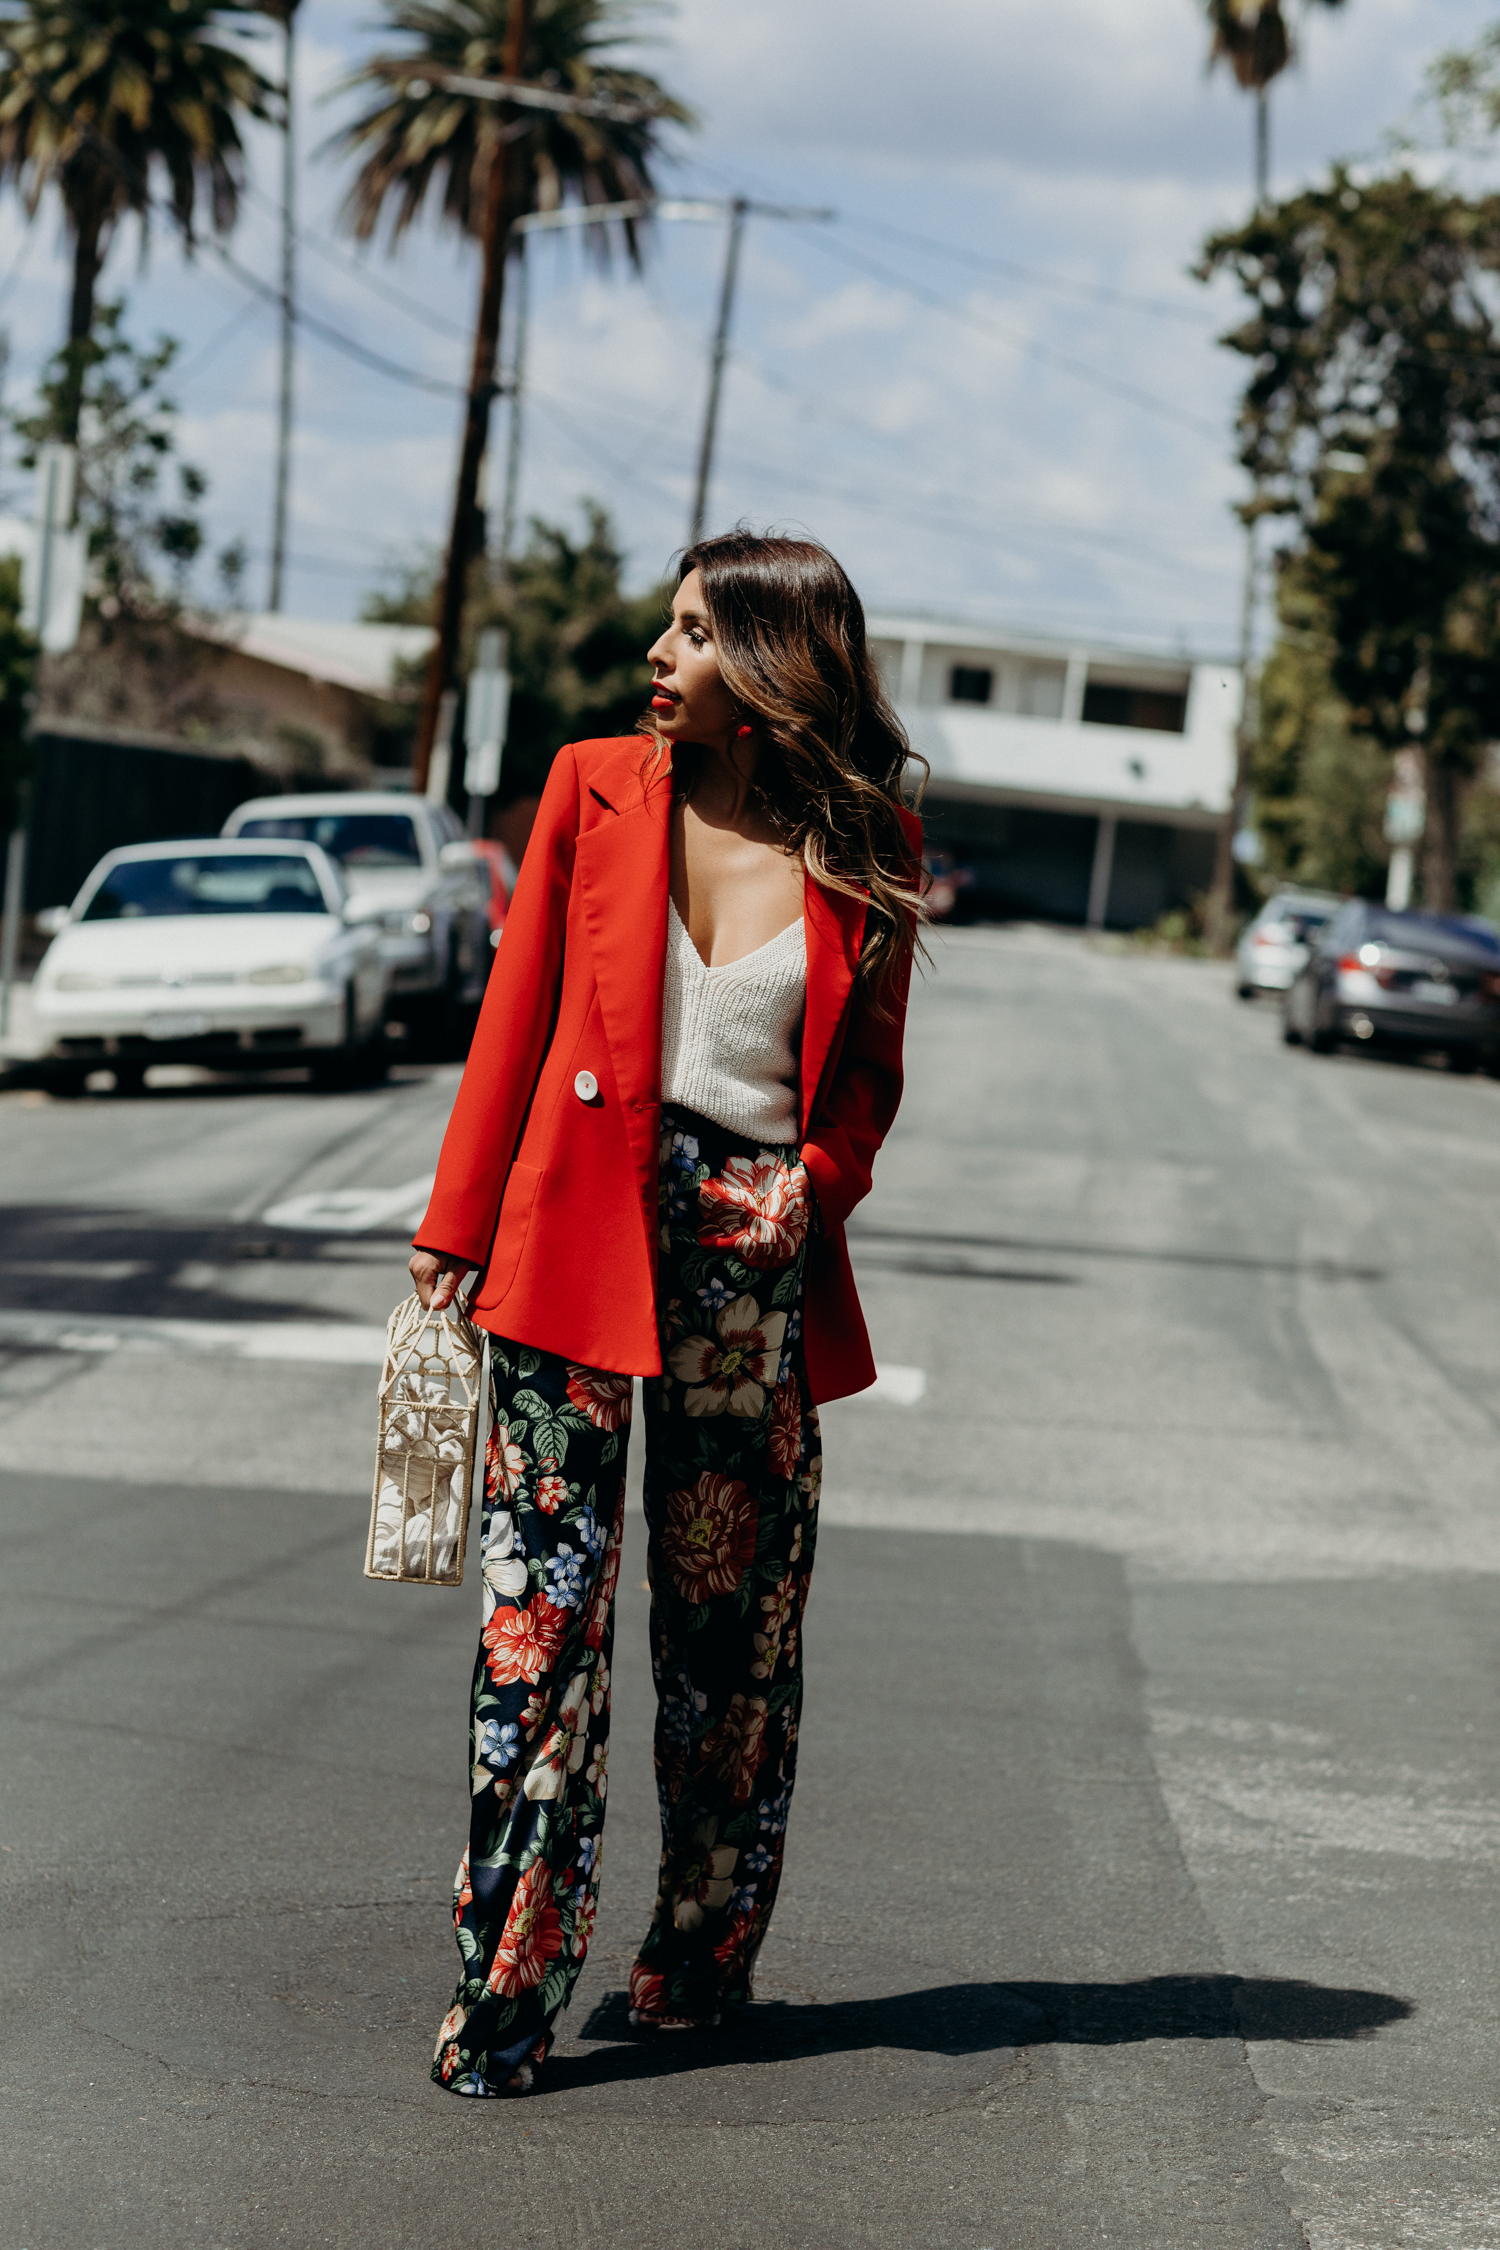 Everyday Pursuit Oversized Red Blazer - Spring Outfit Inspiration for Dove Campaign